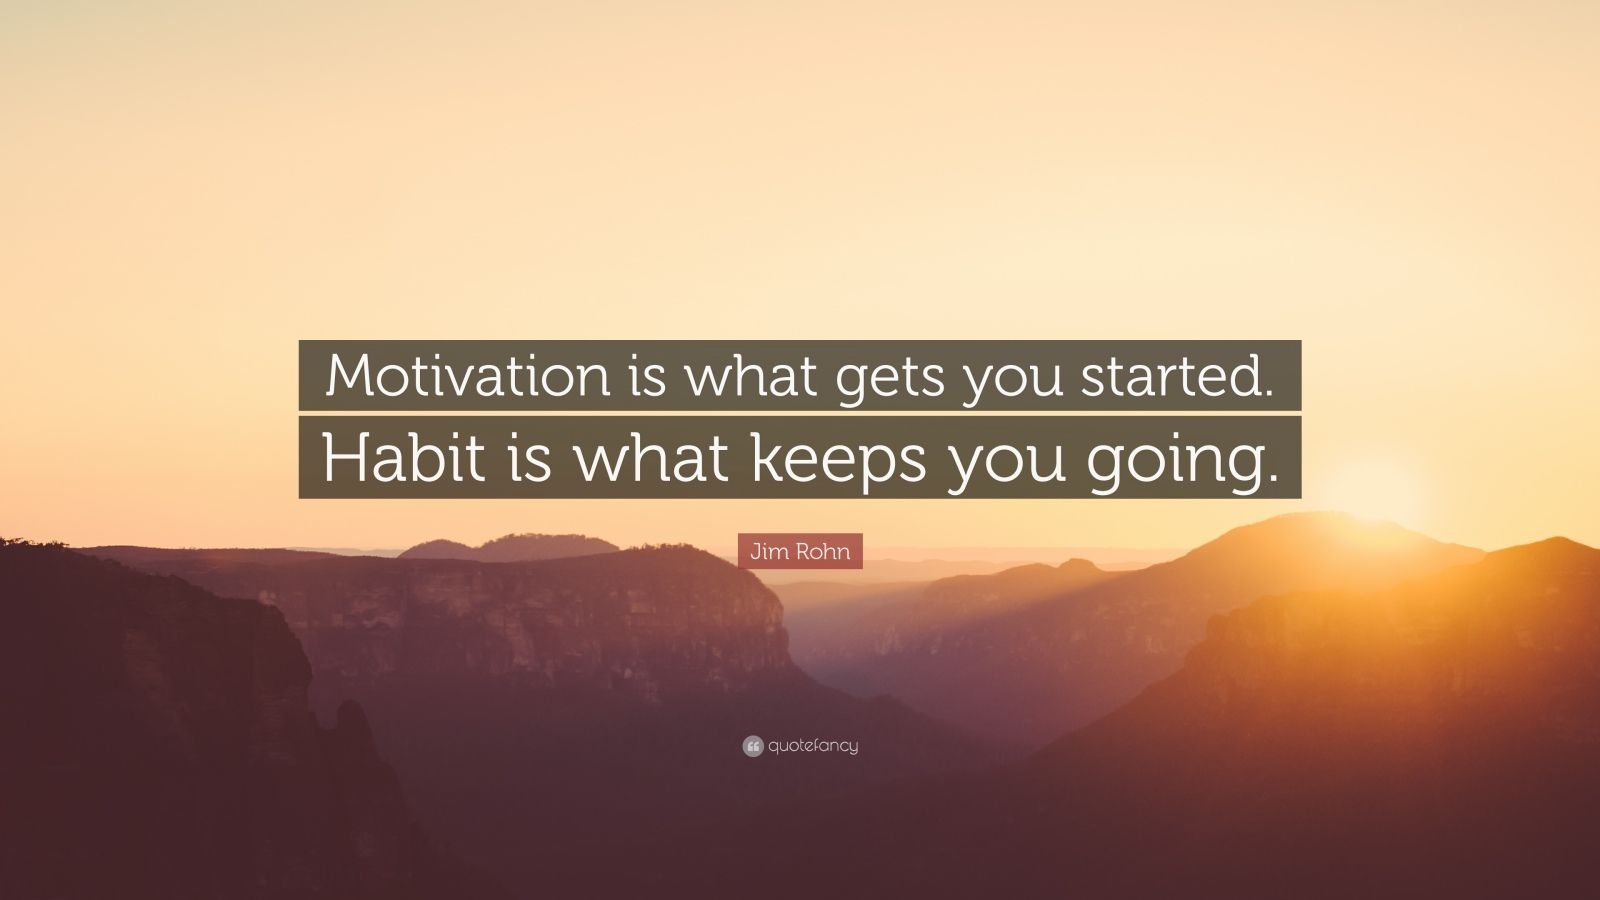 Steve Jobs Motivational Quotes Wallpaper Jim Rohn Quote Motivation Is What Gets You Started